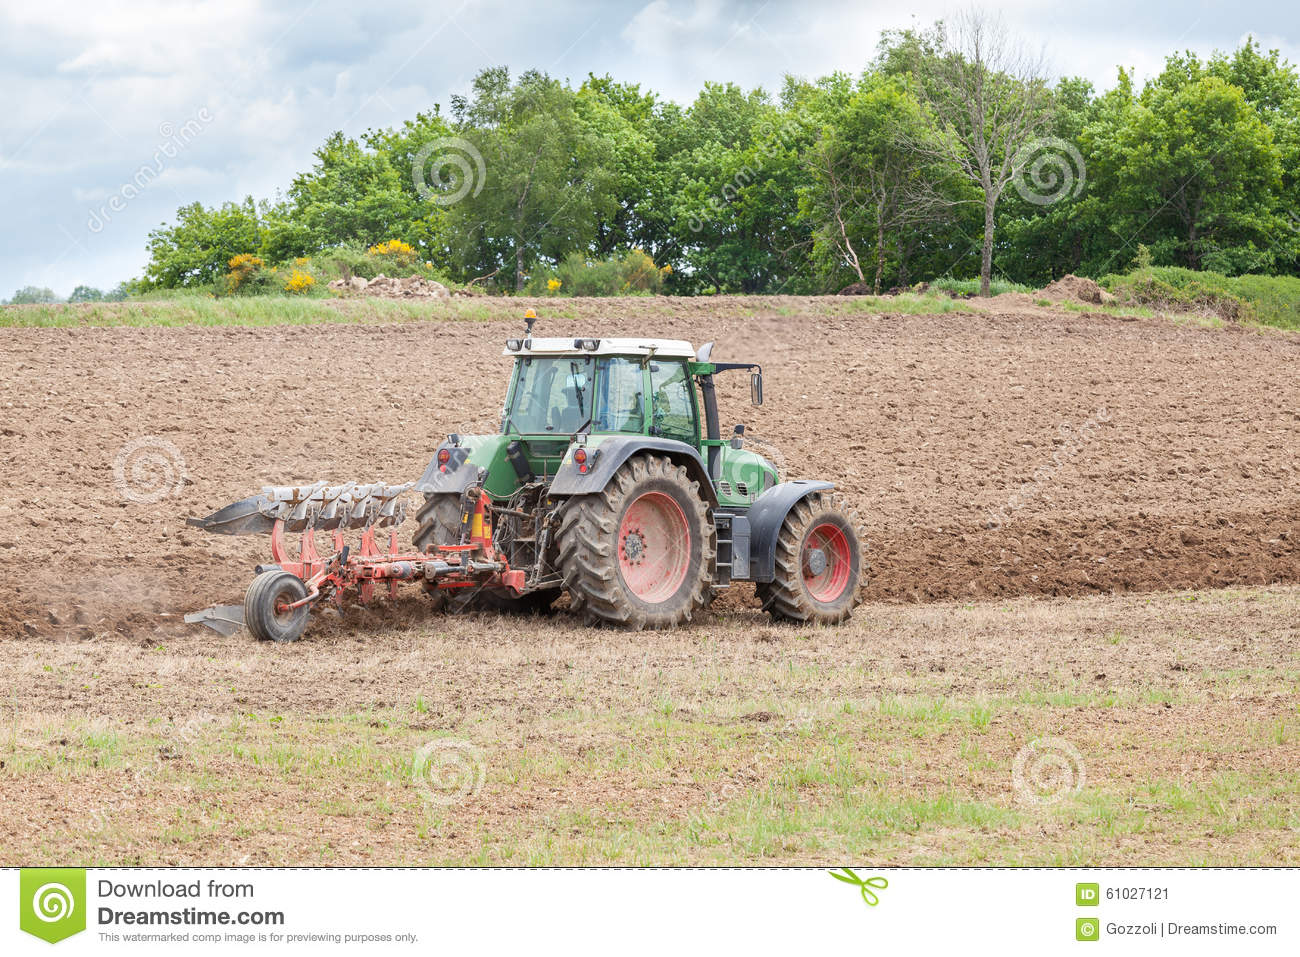 Tractor In Field Planting : Ploughing an agricultural field for planting stock photo